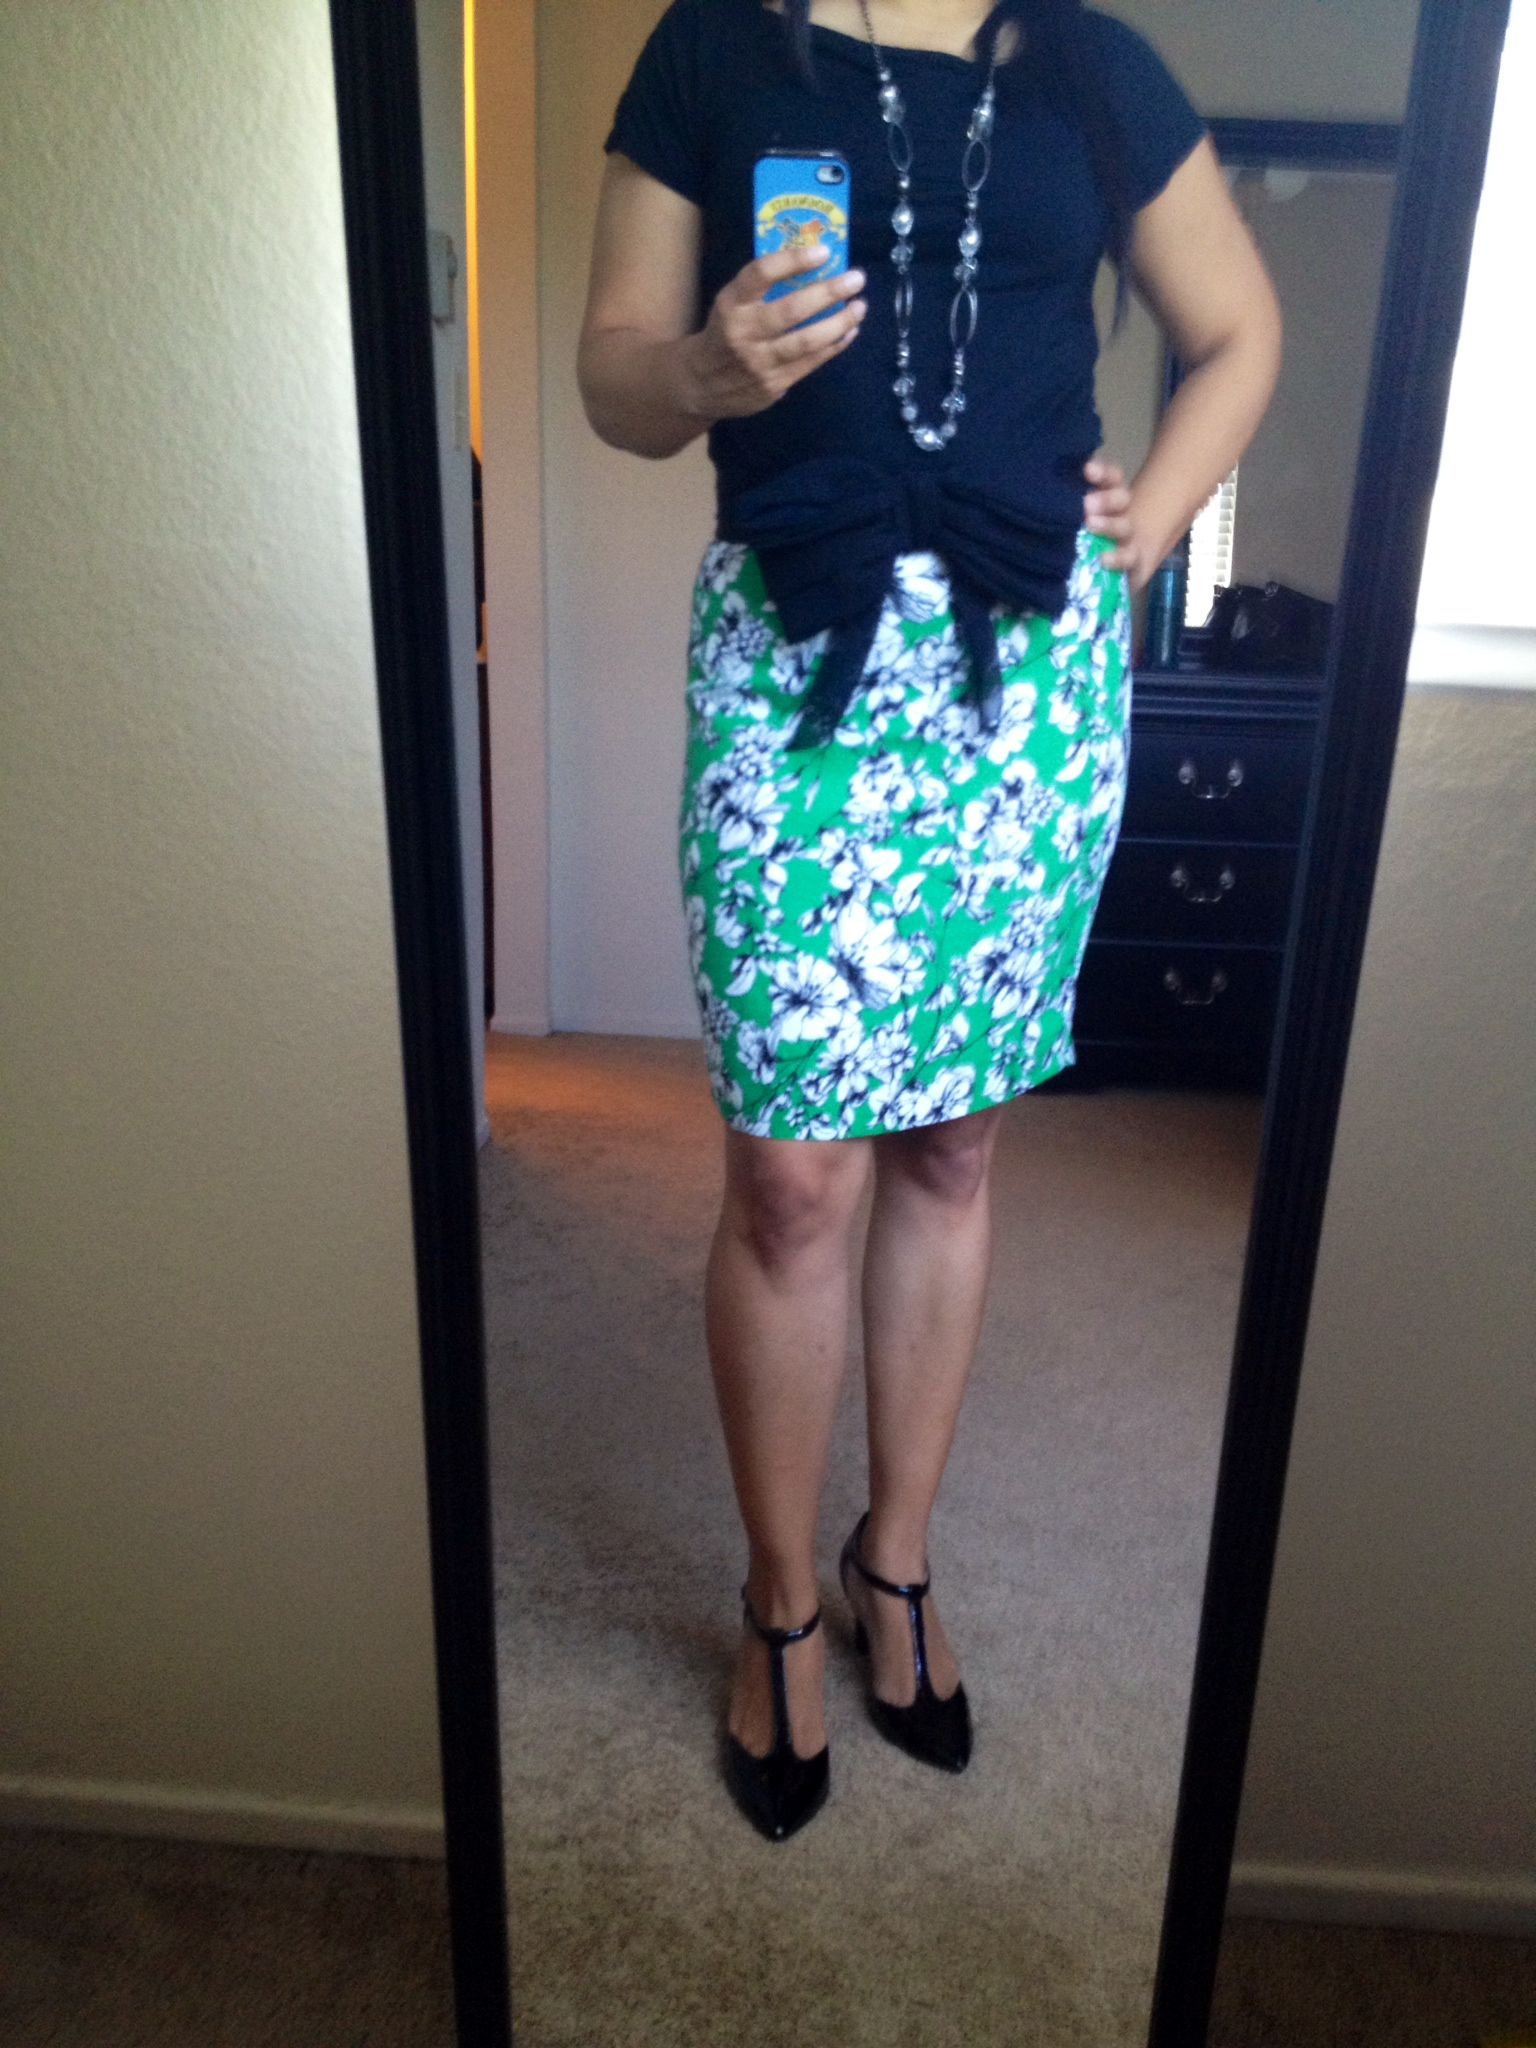 Work Outfit Black Blouse Green Skirt With White And Black Flowers